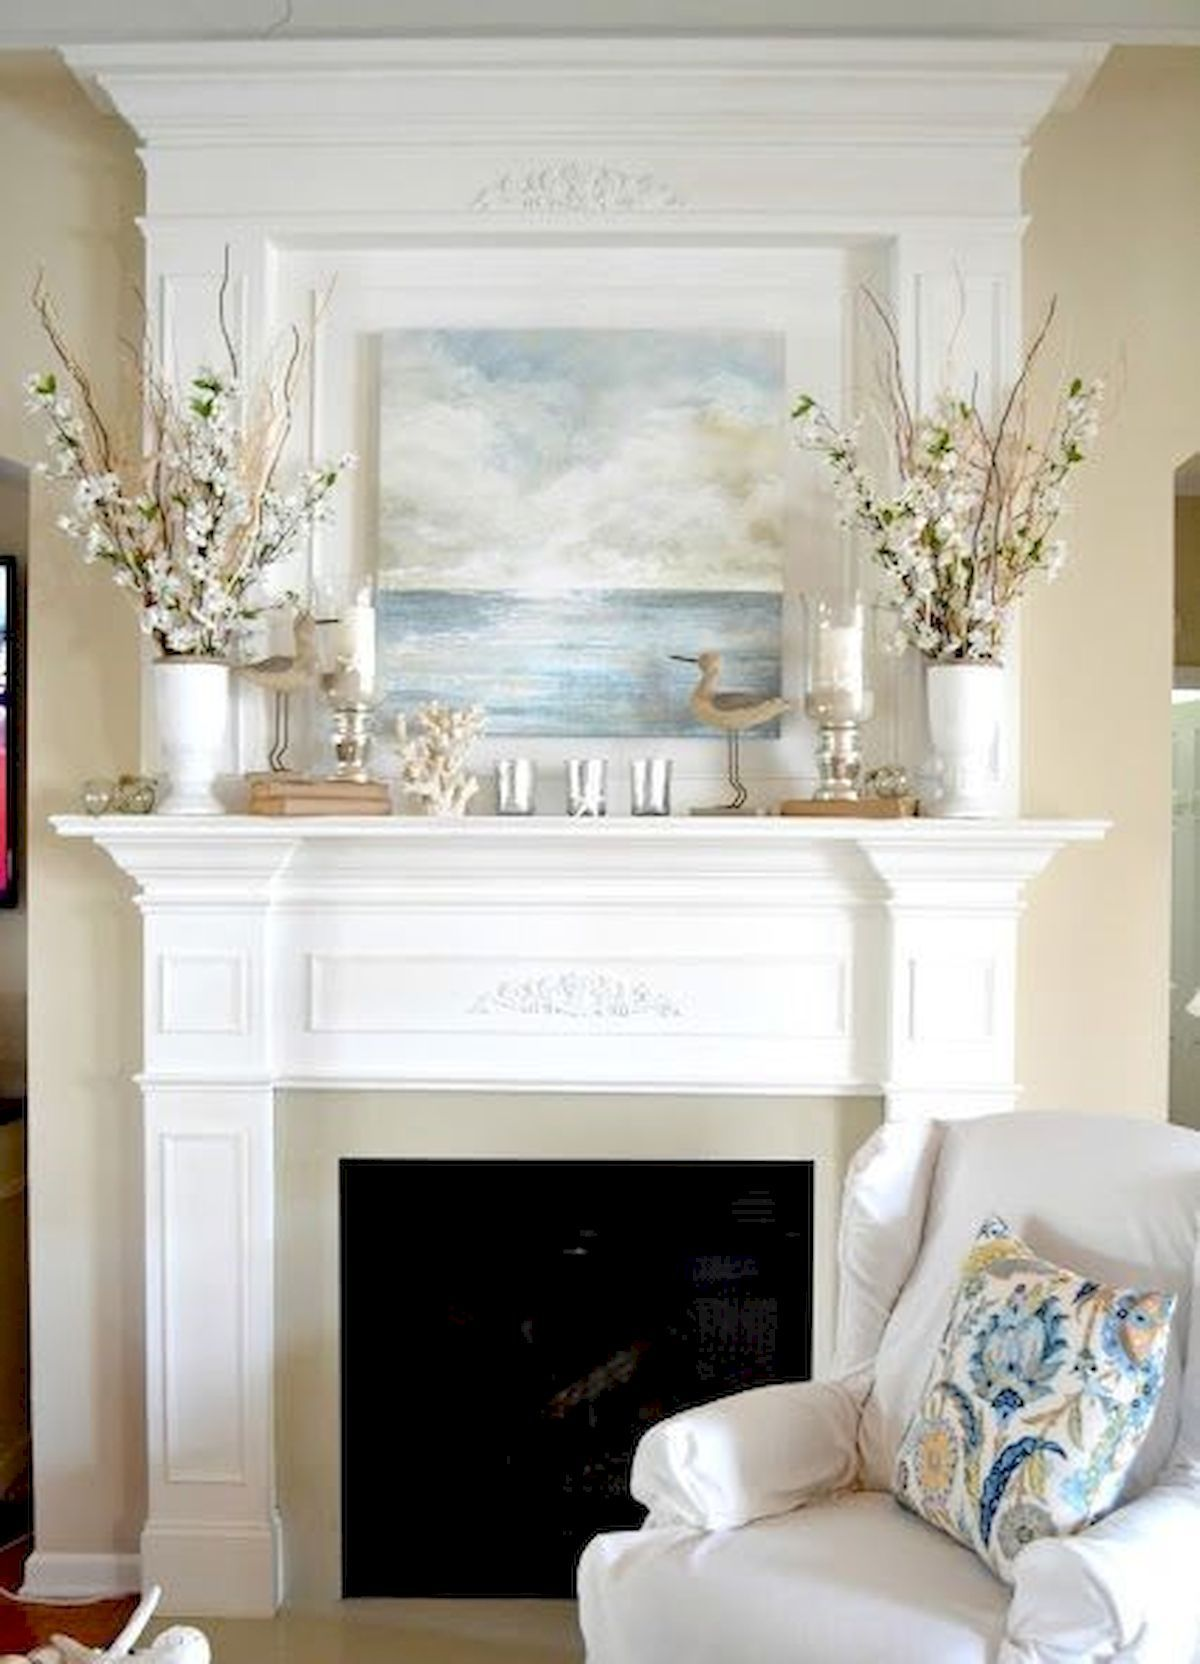 50 Beautiful Spring Mantel Decorating Ideas images